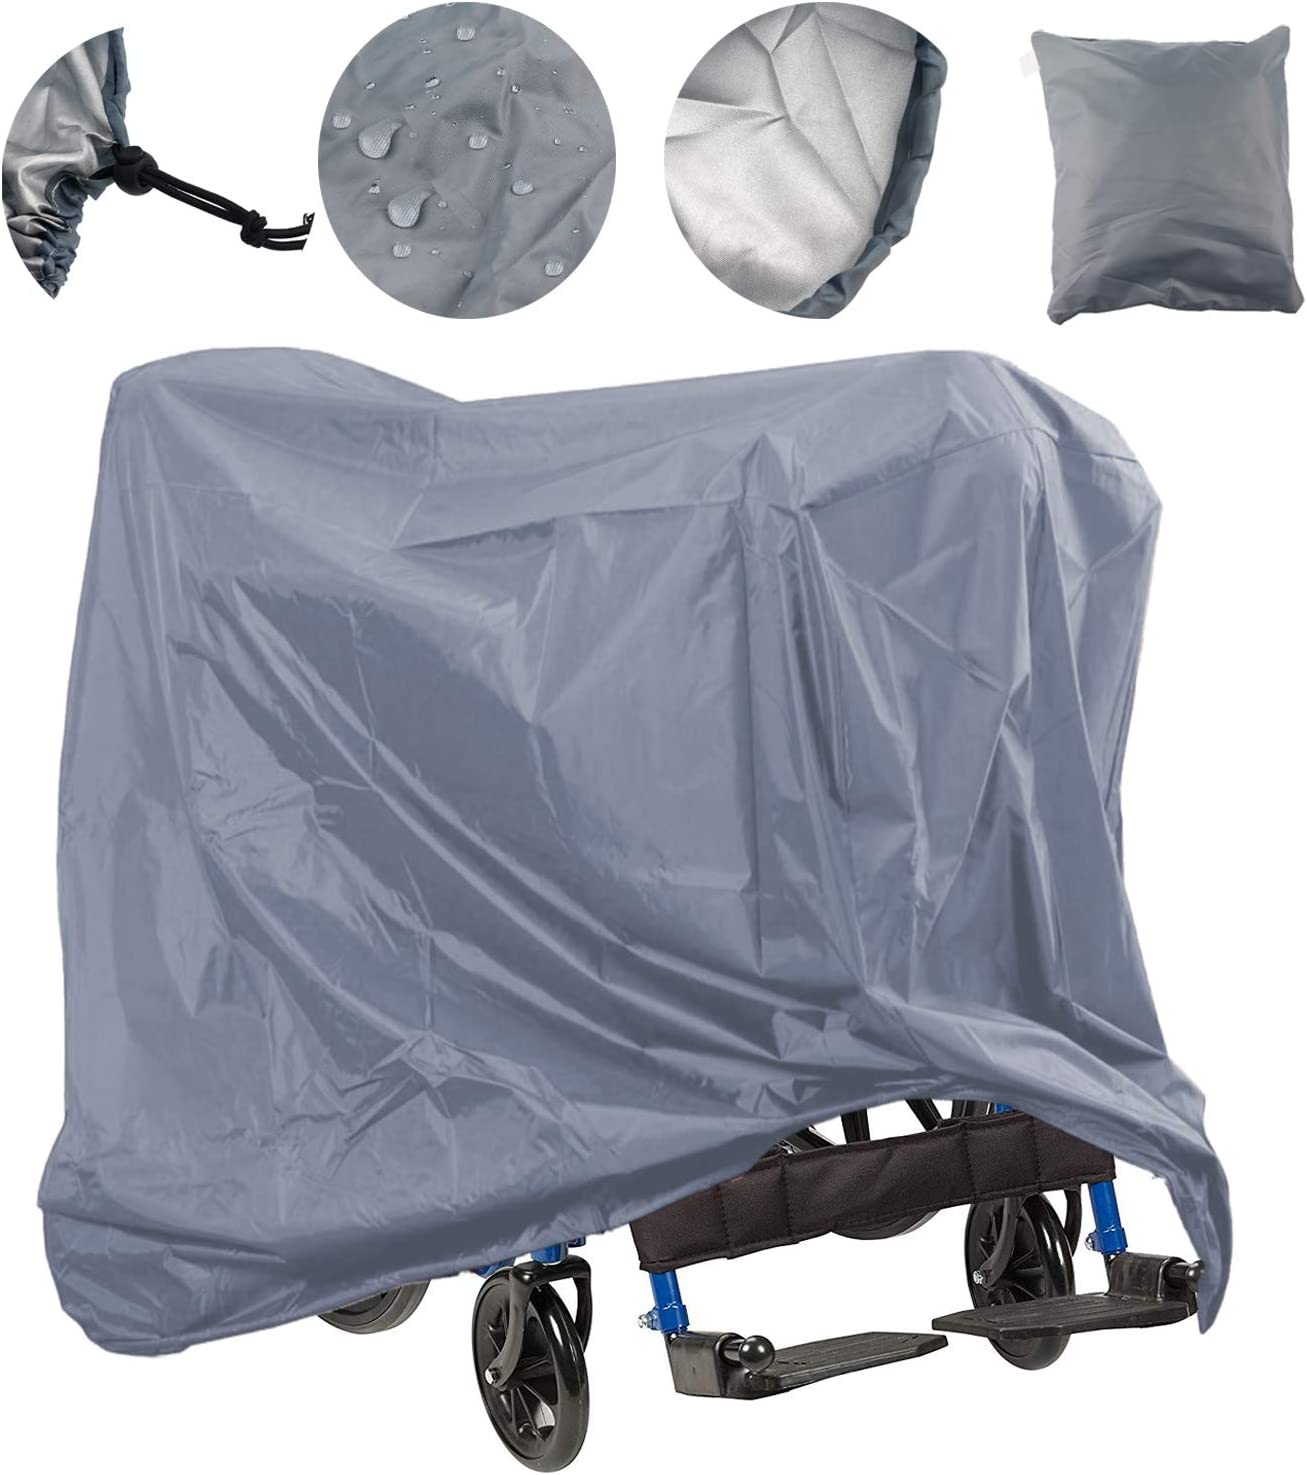 L x W x H 67 x 24 x 46 inch Wheelchair Storage Cover Oxford Fabric Lightweight Rain Protector from Dust Dirt Snow Rain Sun Rays Lmeison Mobility Scooter Cover Waterproof